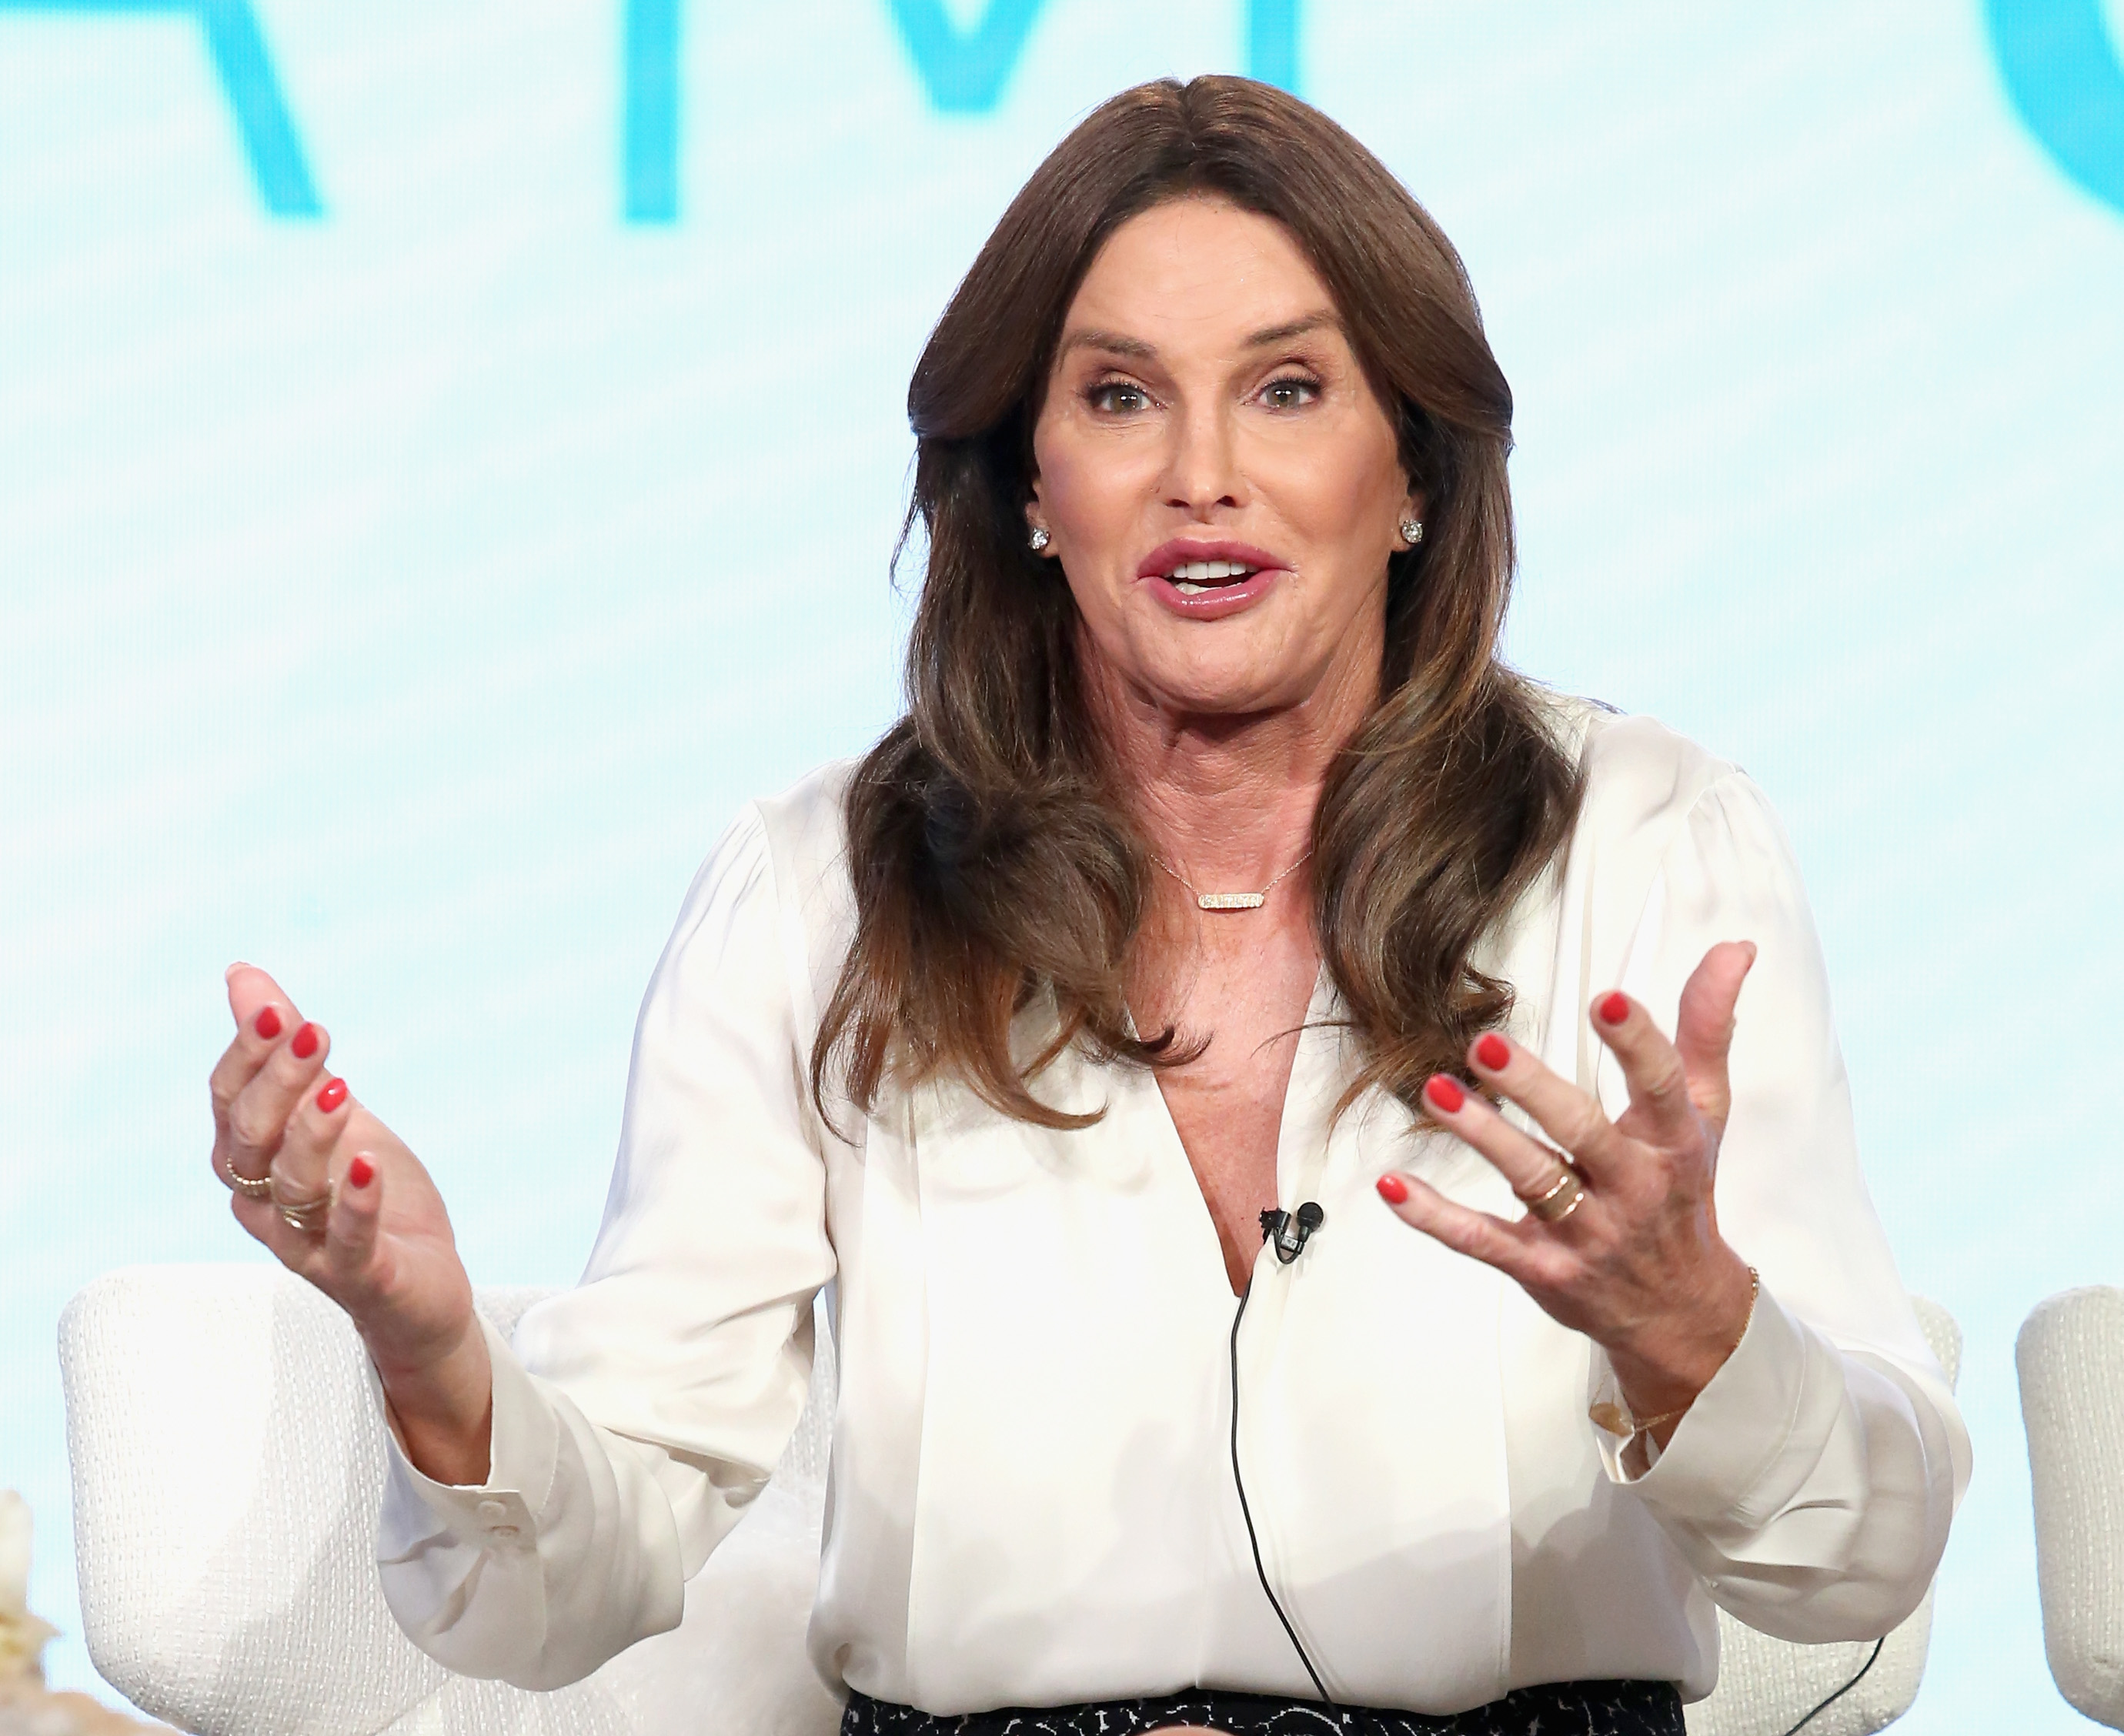 Caitlyn Jenner speaks onstage during the 'I Am Cait' panel discussion at the NBCUniversal portion of the 2016 Winter TCA Tour at Langham Hotel on January 14, 2016 in Pasadena, California.